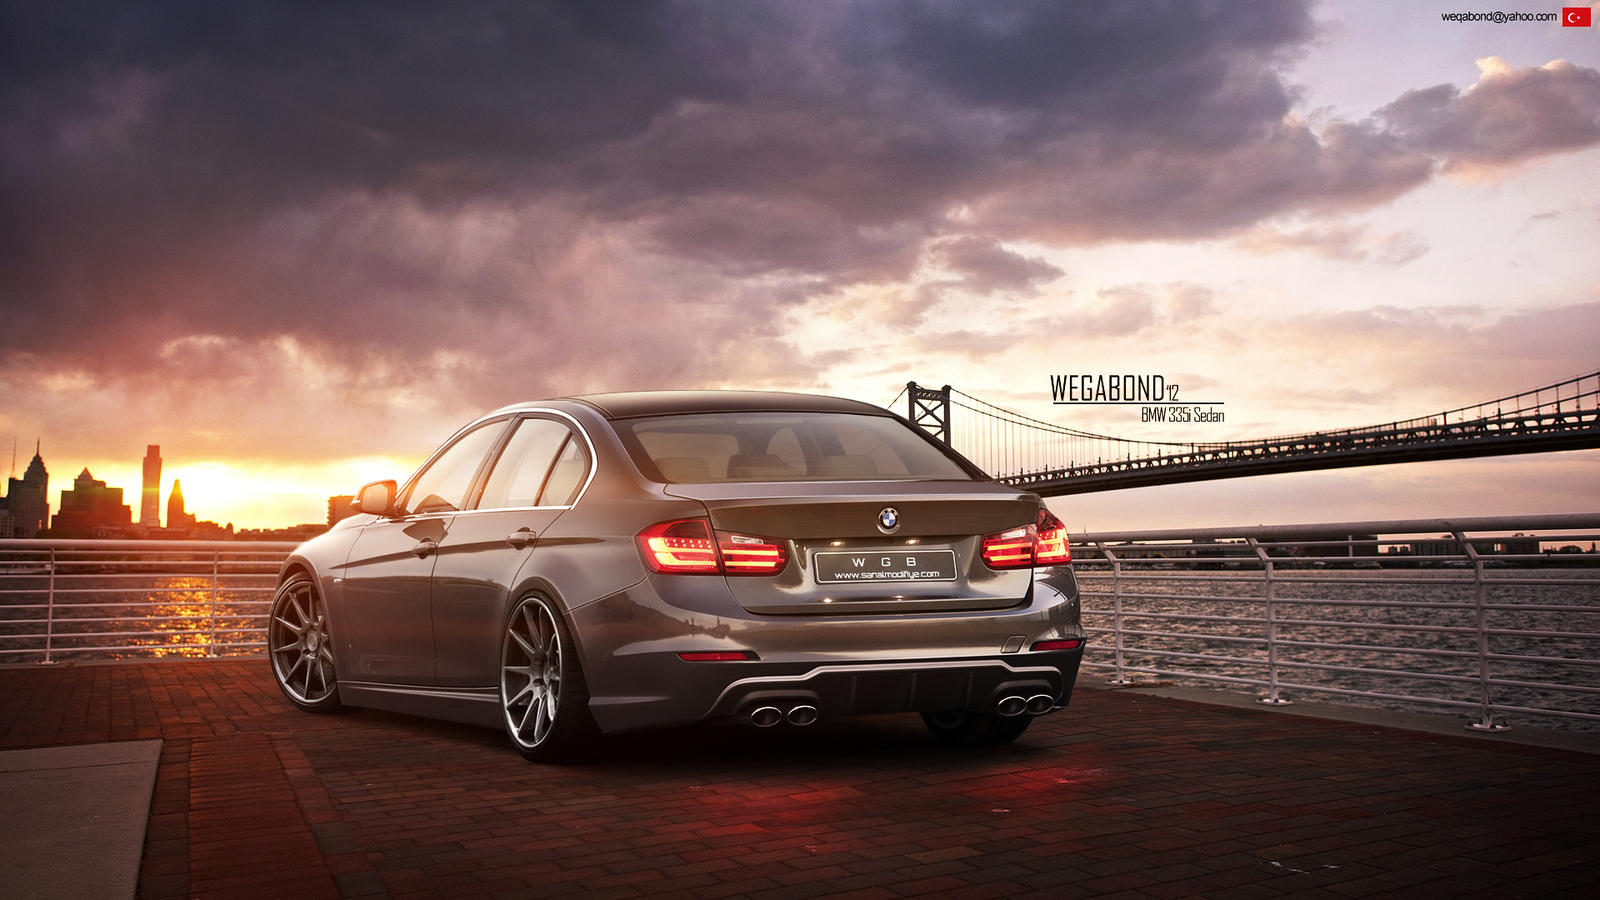 Bmw 335i Sedan by wegabond